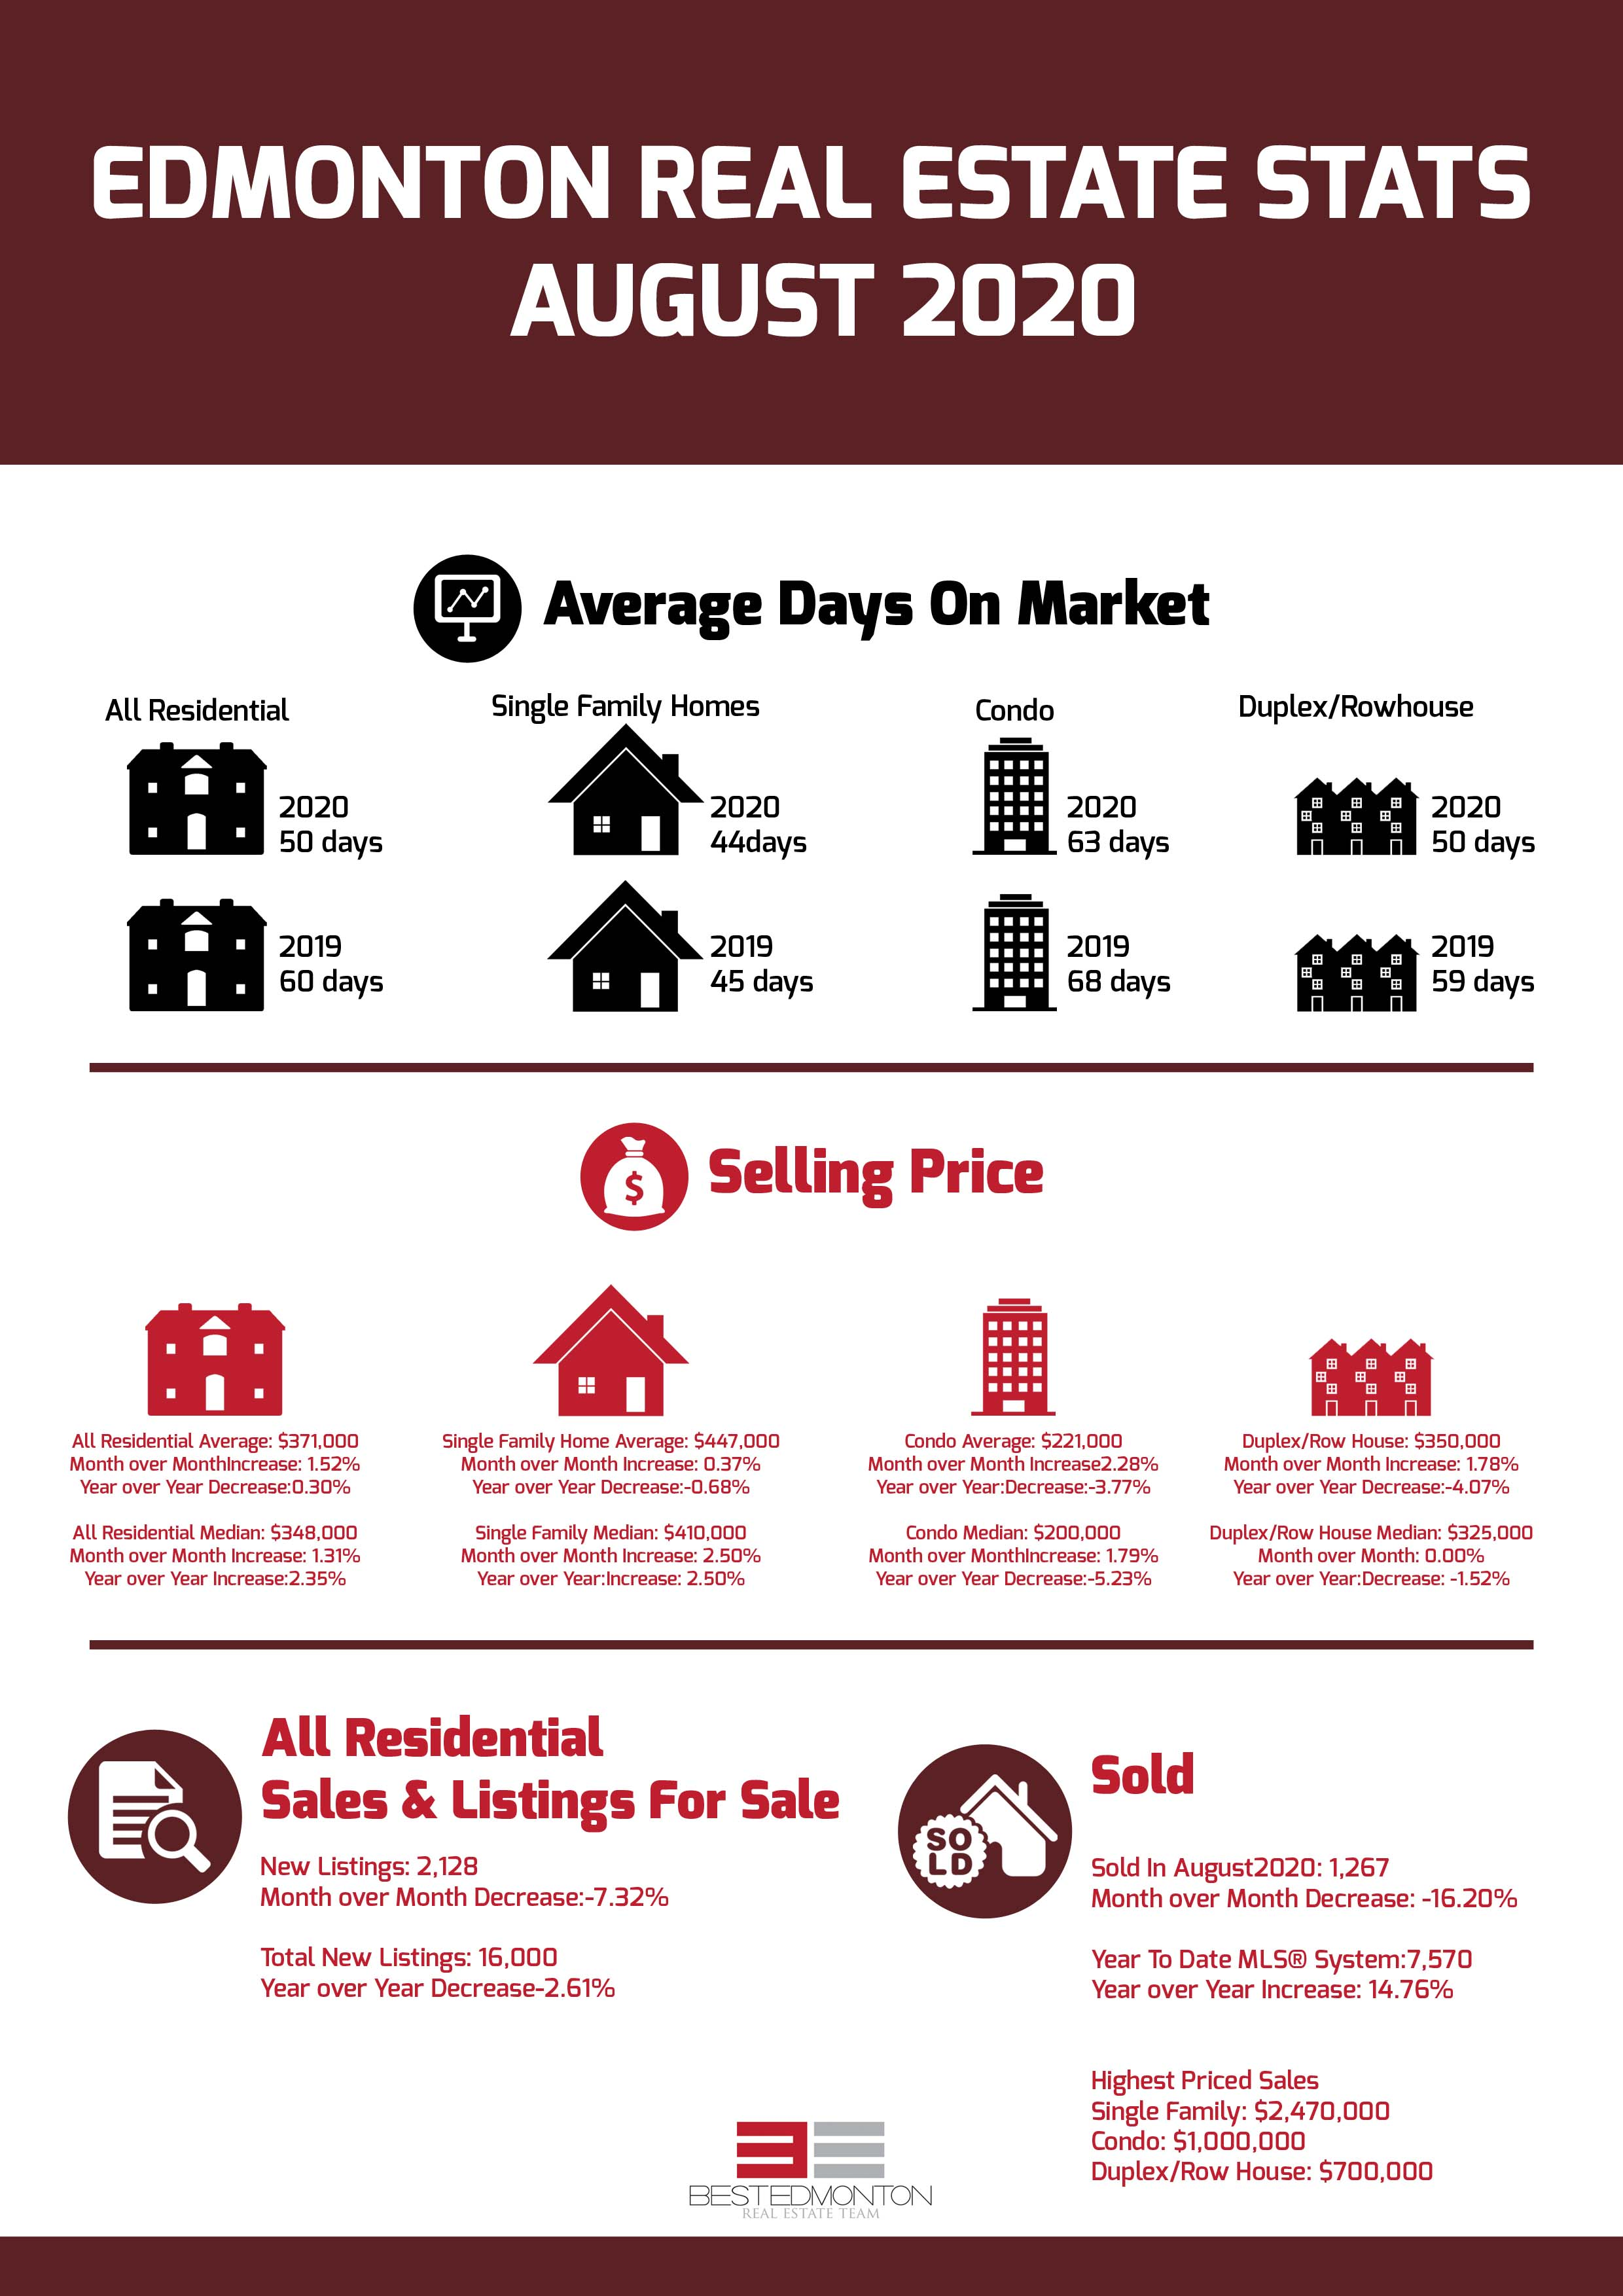 Edmonton Real Estate Stats August 2020